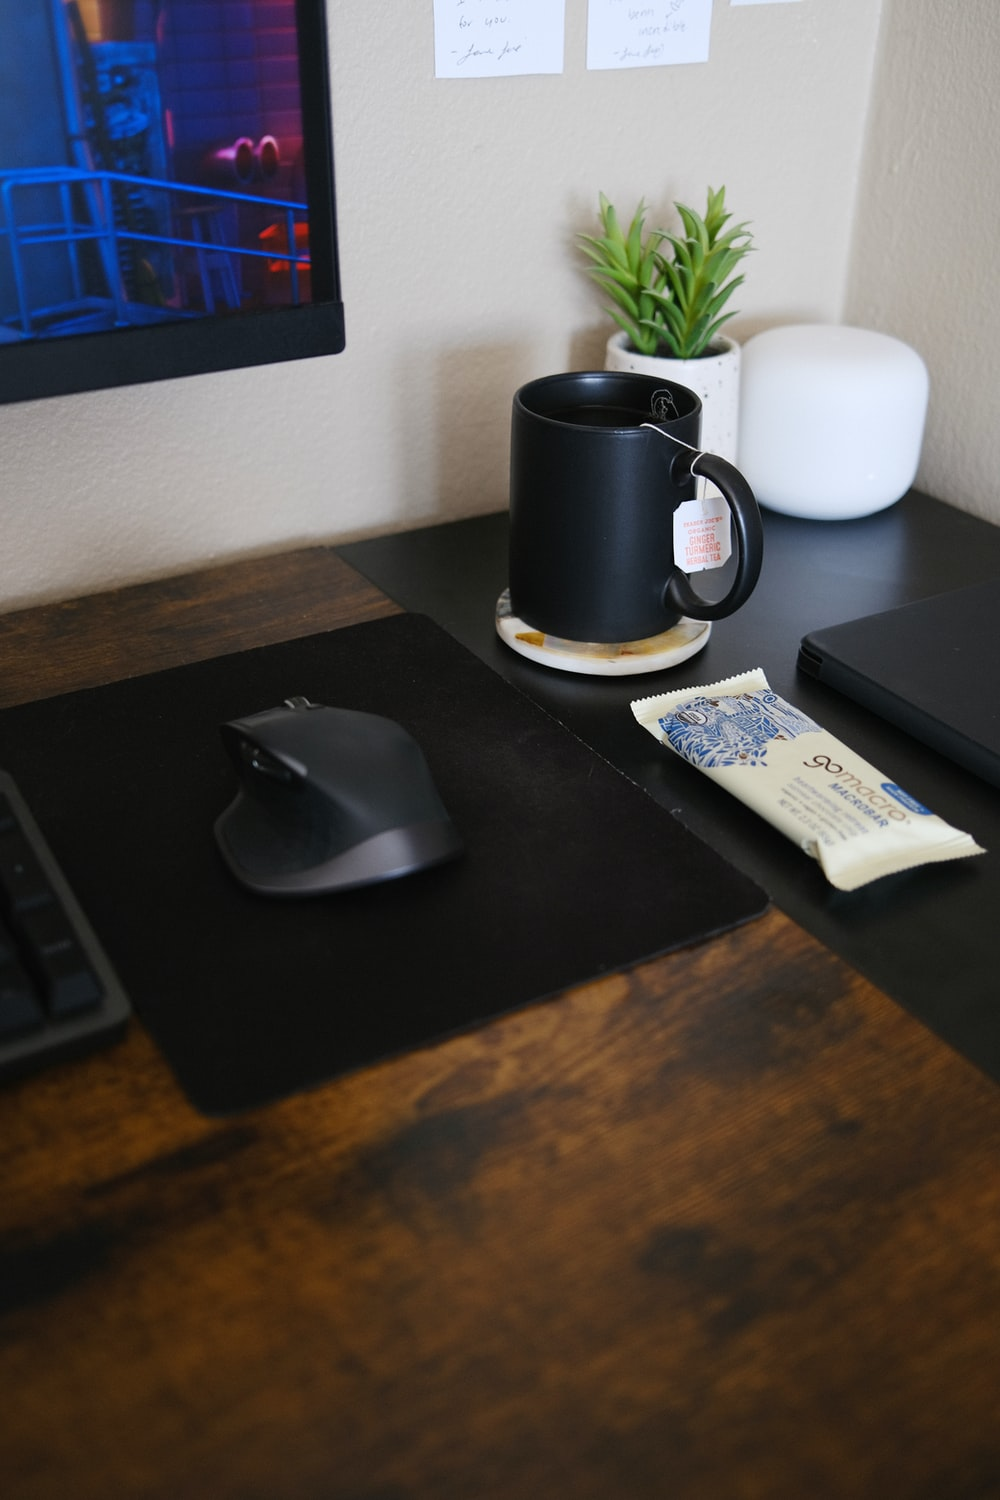 black and silver cordless computer mouse beside black laptop computer